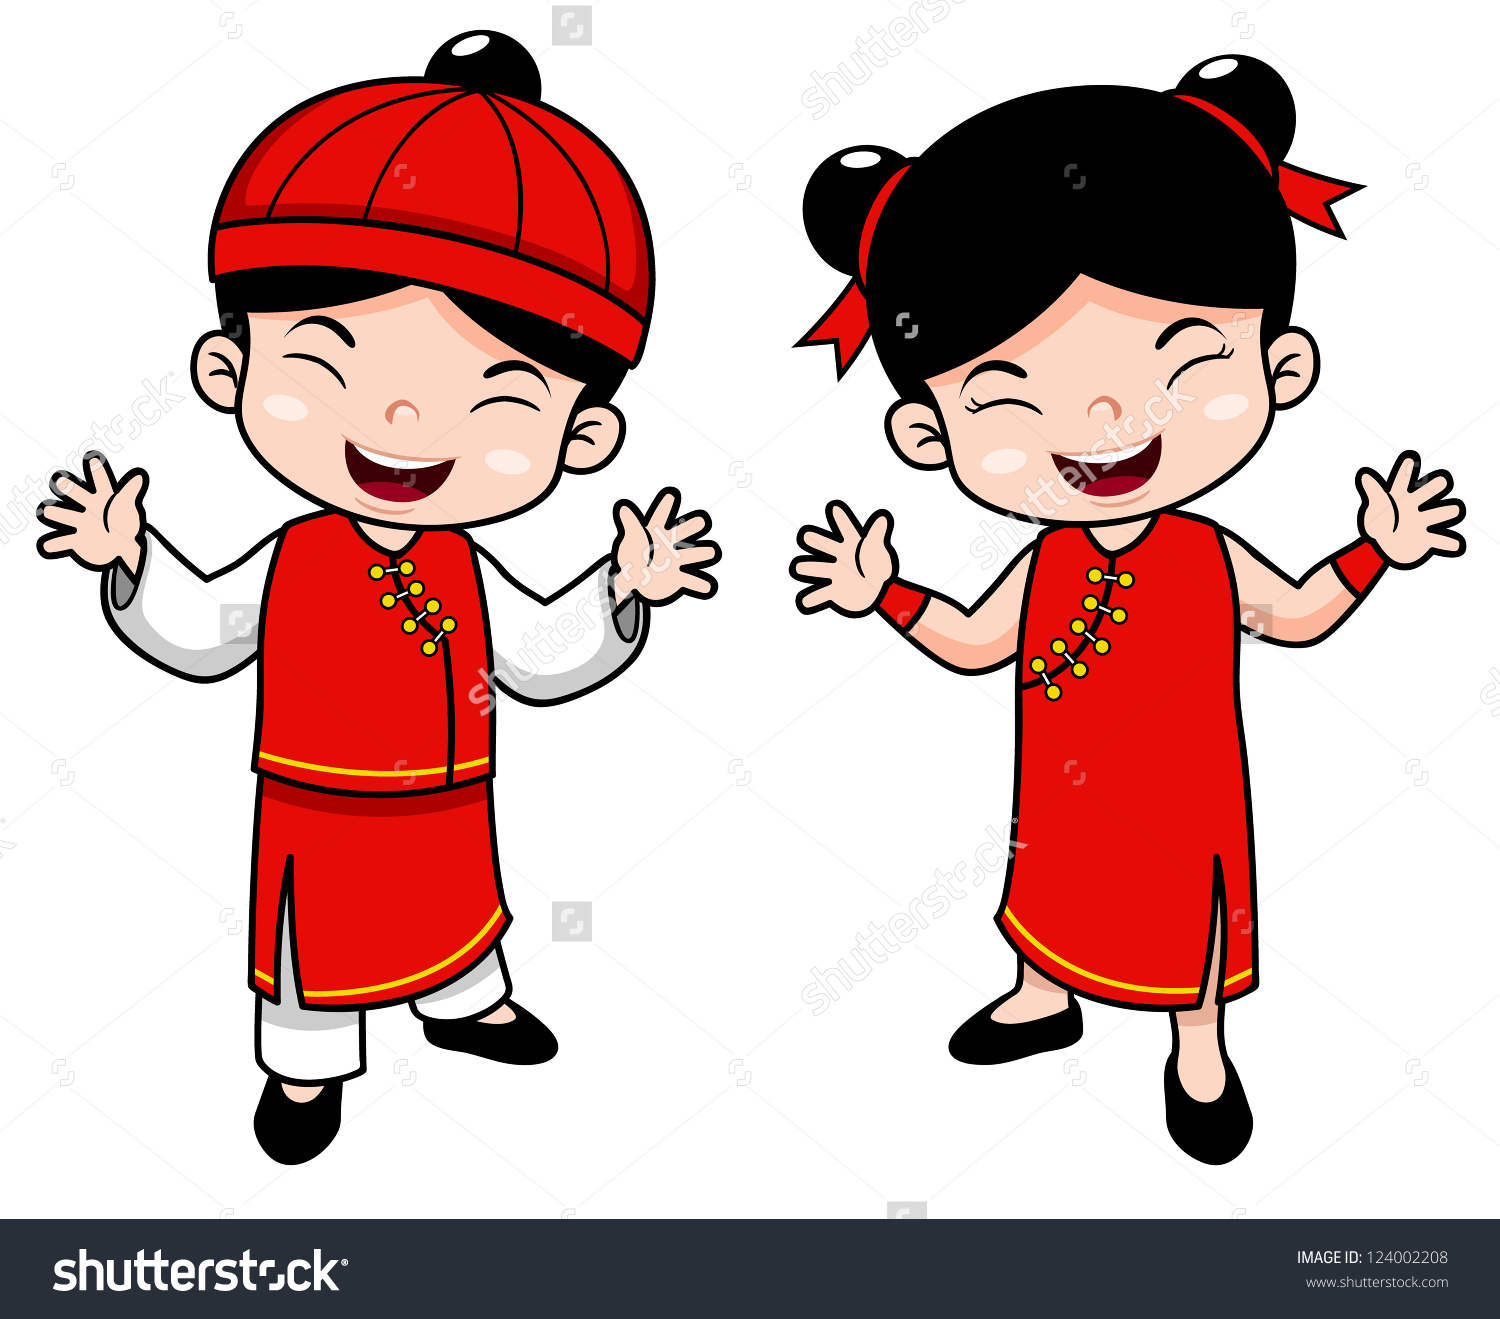 Chinese boy clipart.